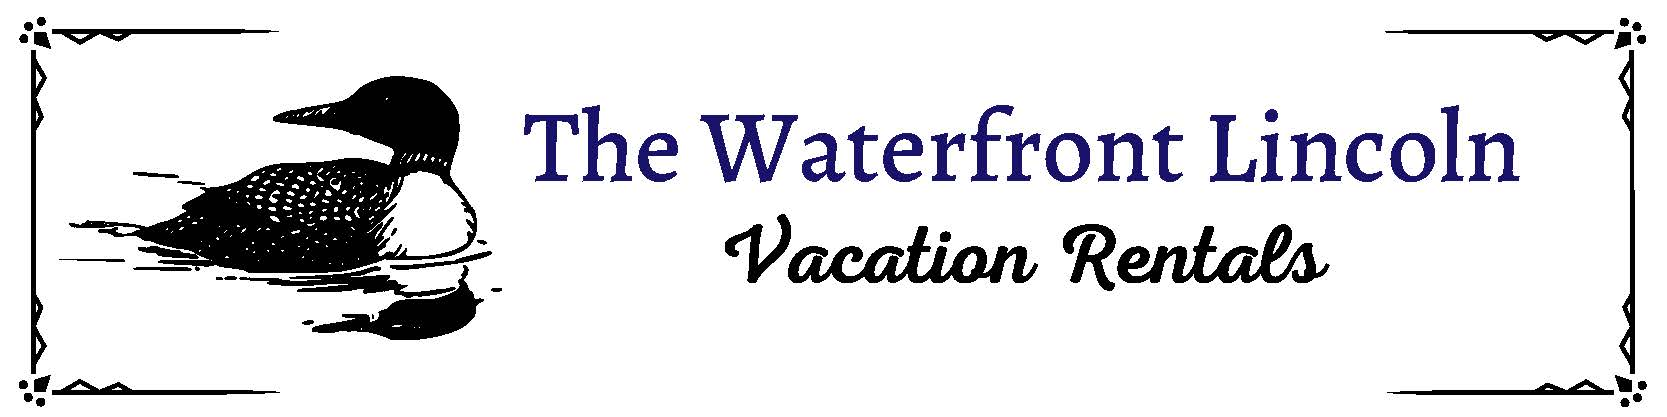 Waterfront Lincoln Vacation Rentals